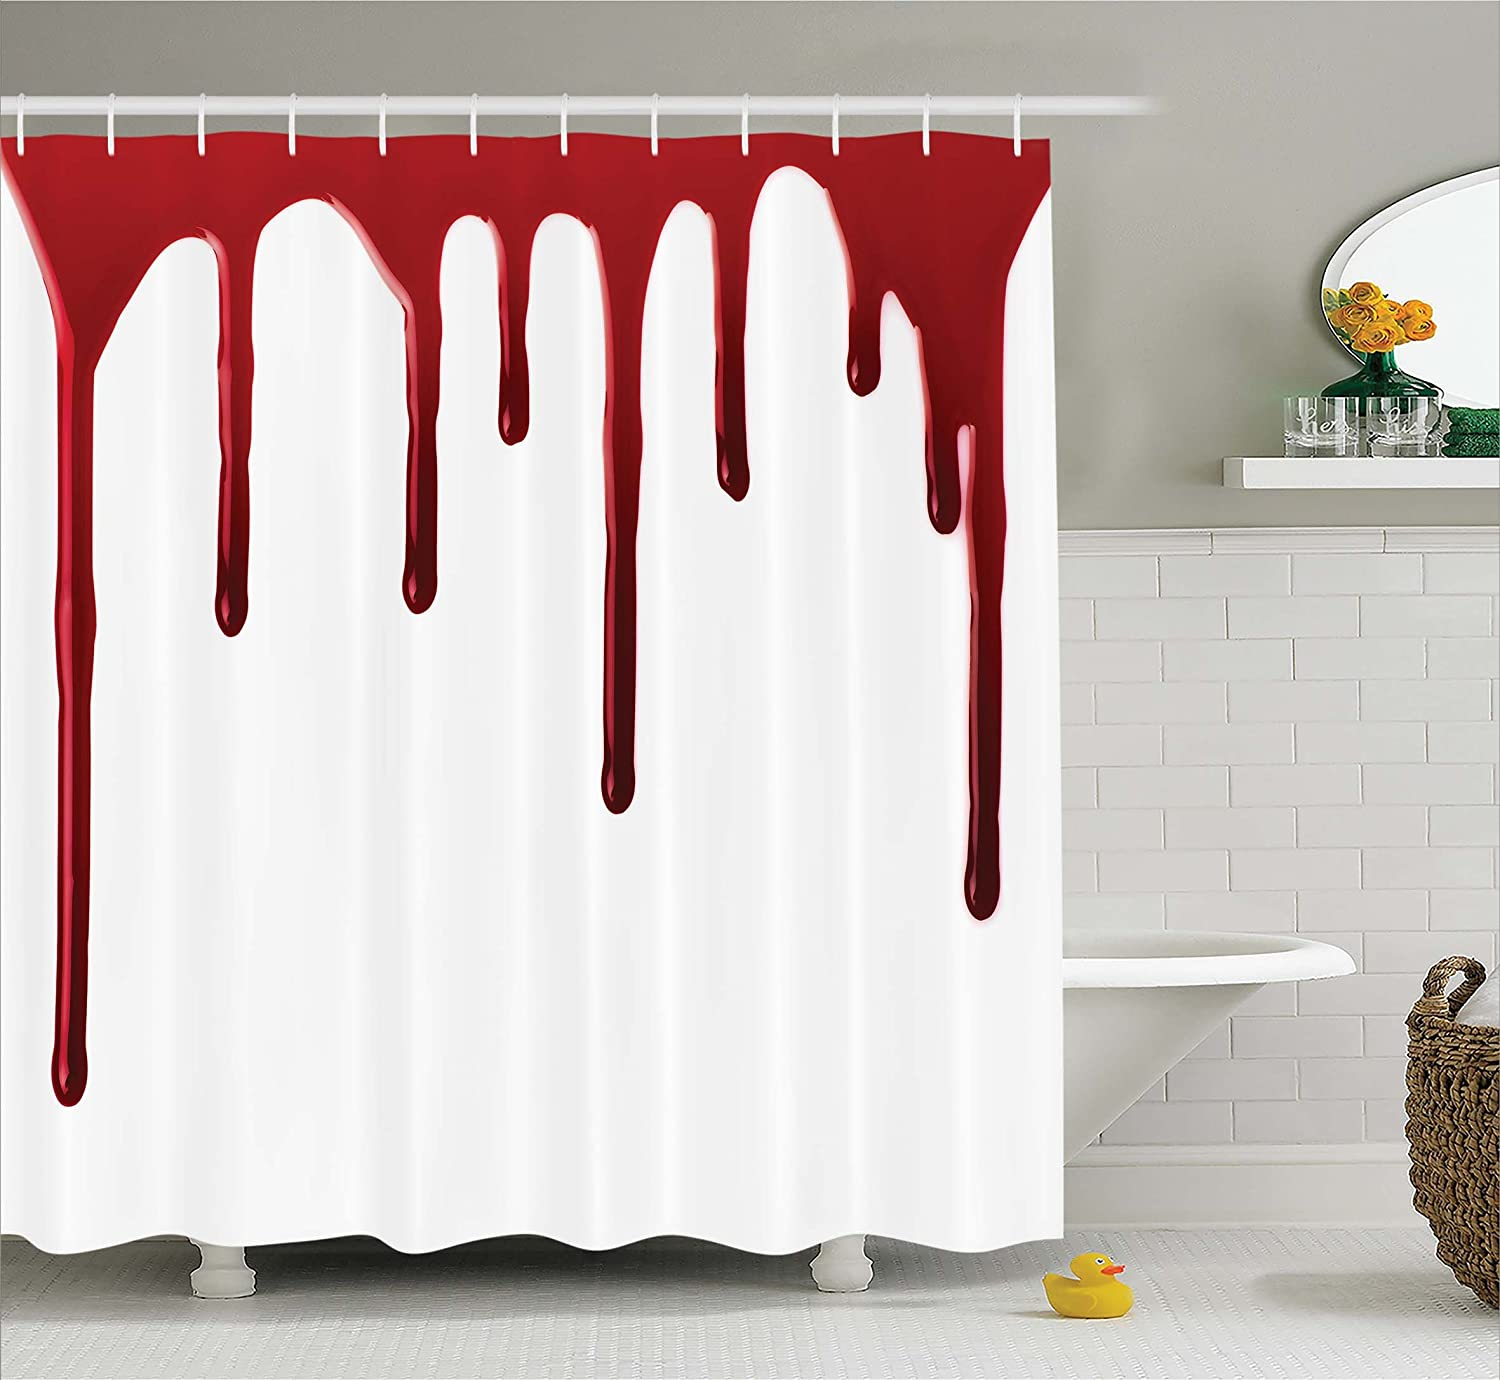 Halloween shower curtains fun and creepy designs for Halloween bathroom ideas